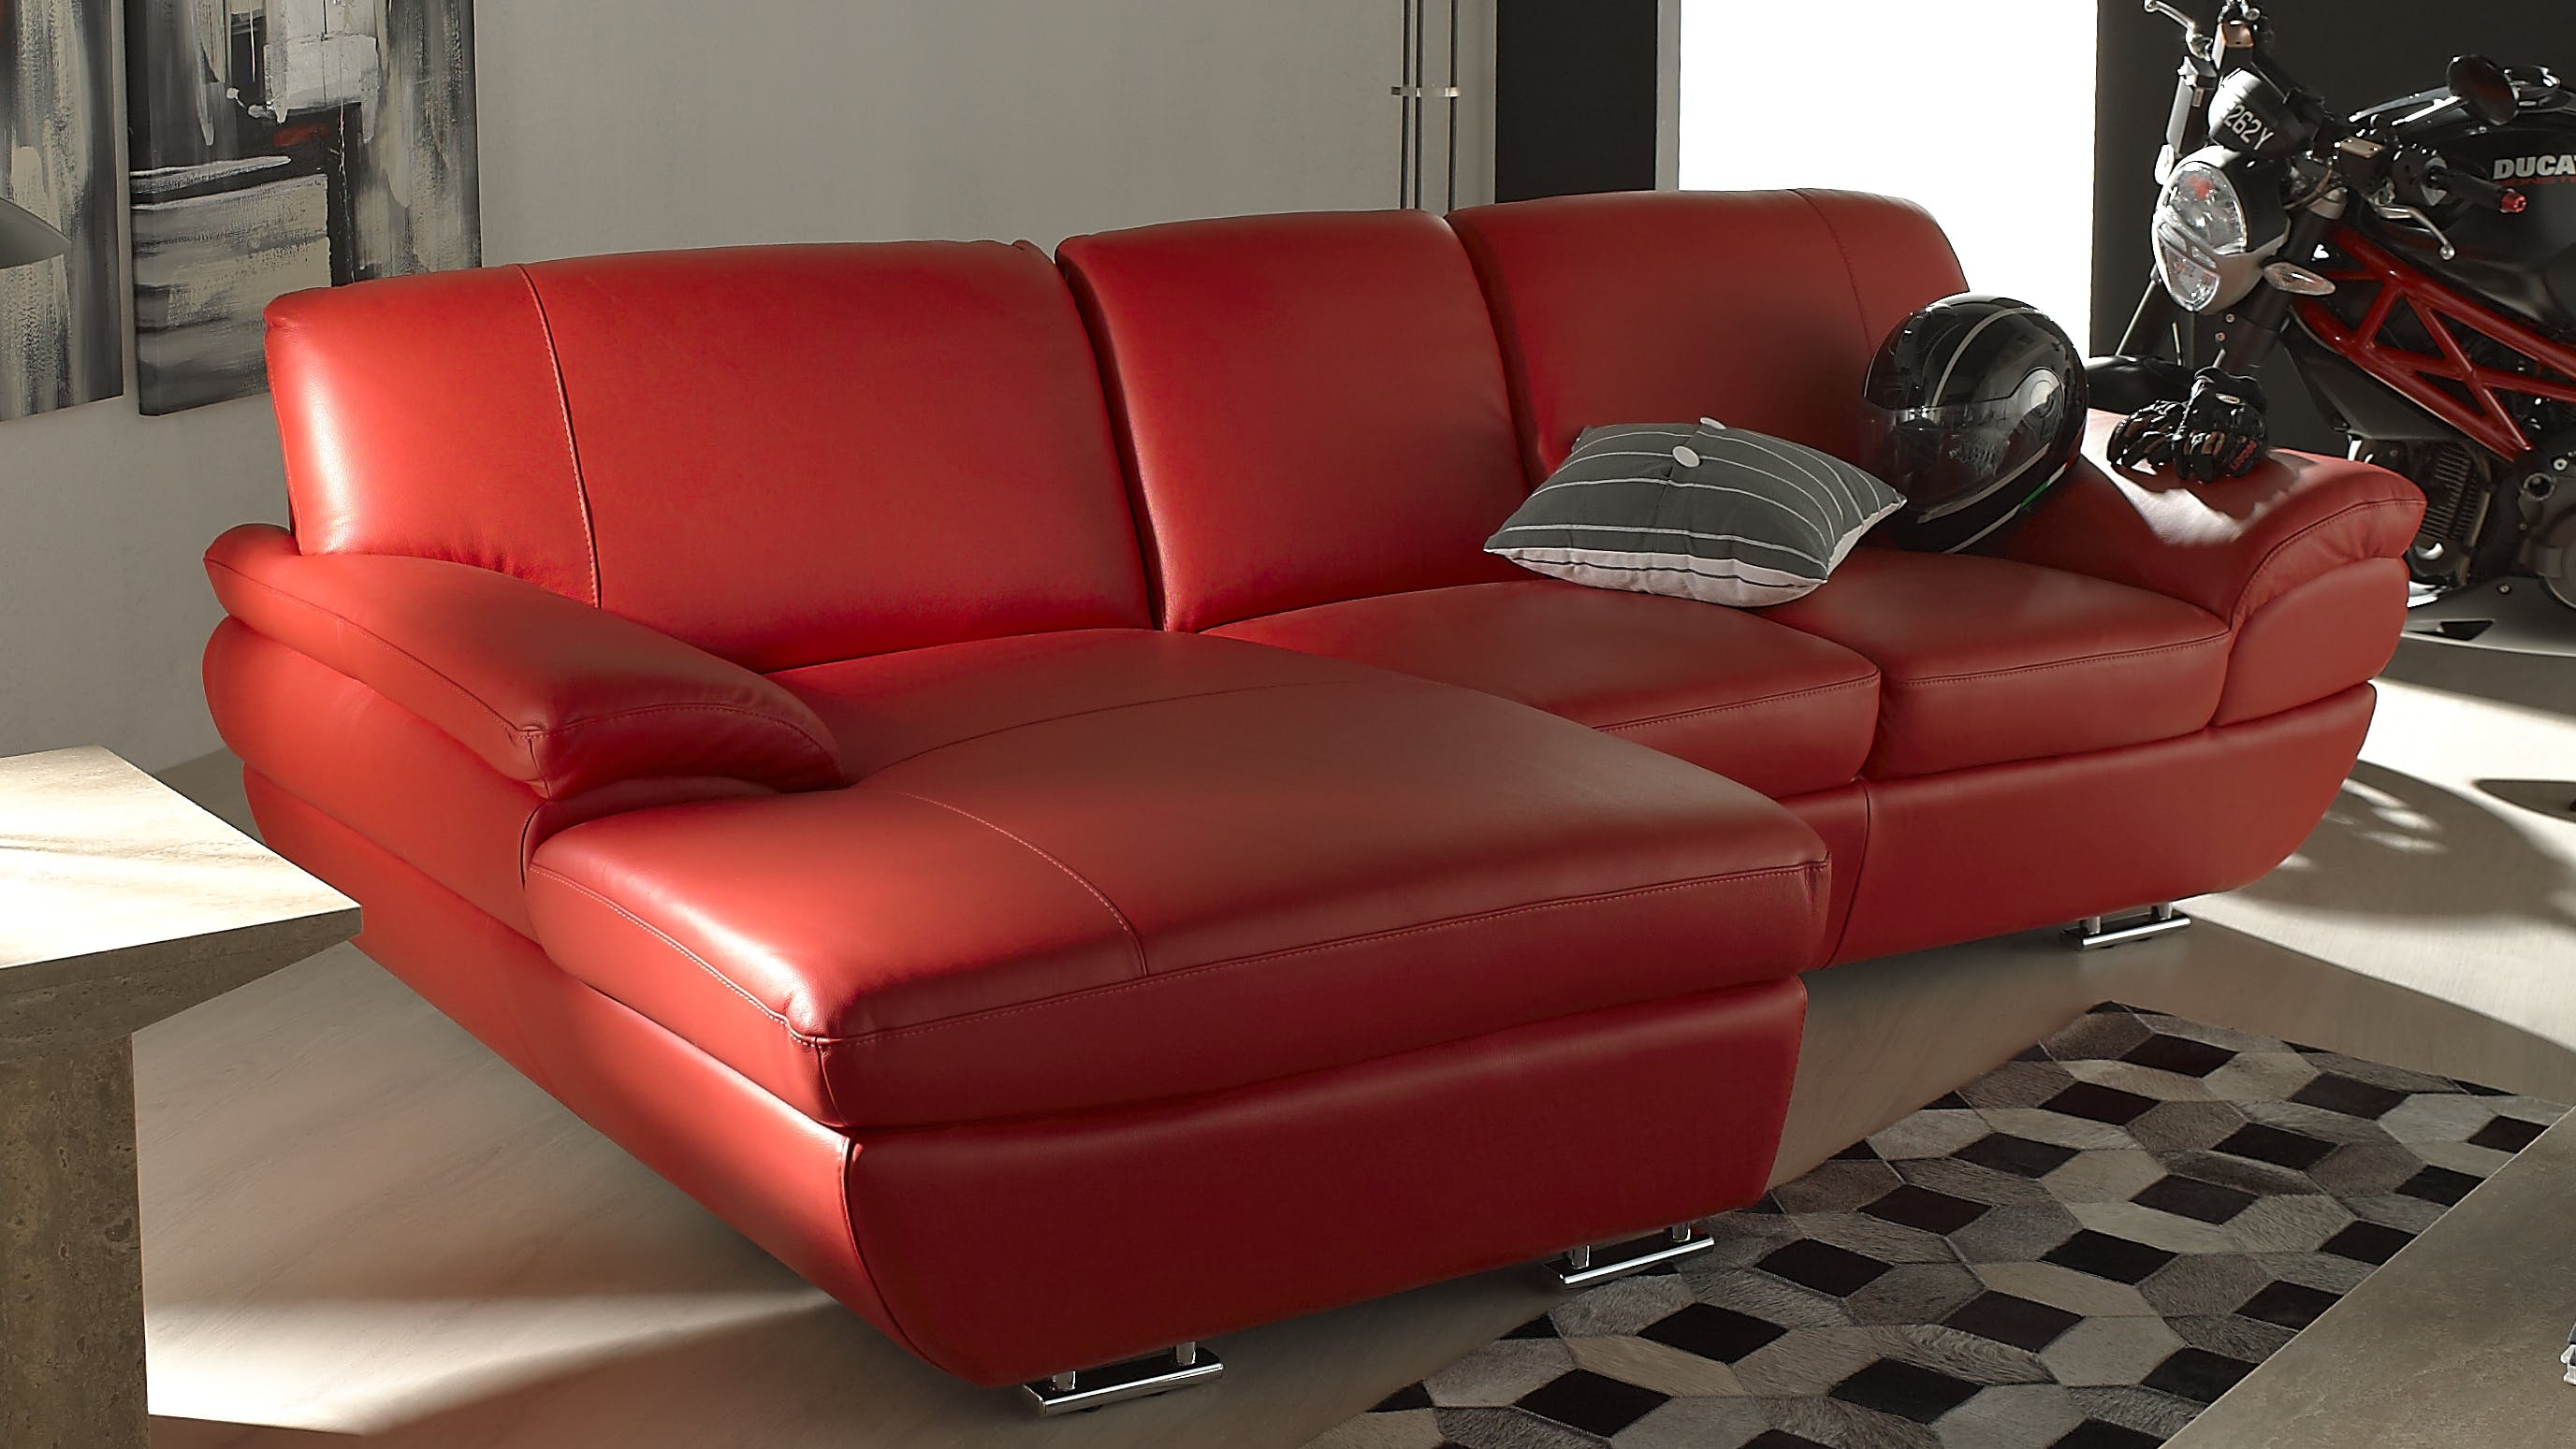 Saporini marta full leather 2 seater sofa with chaise for 2 seater sofa with chaise